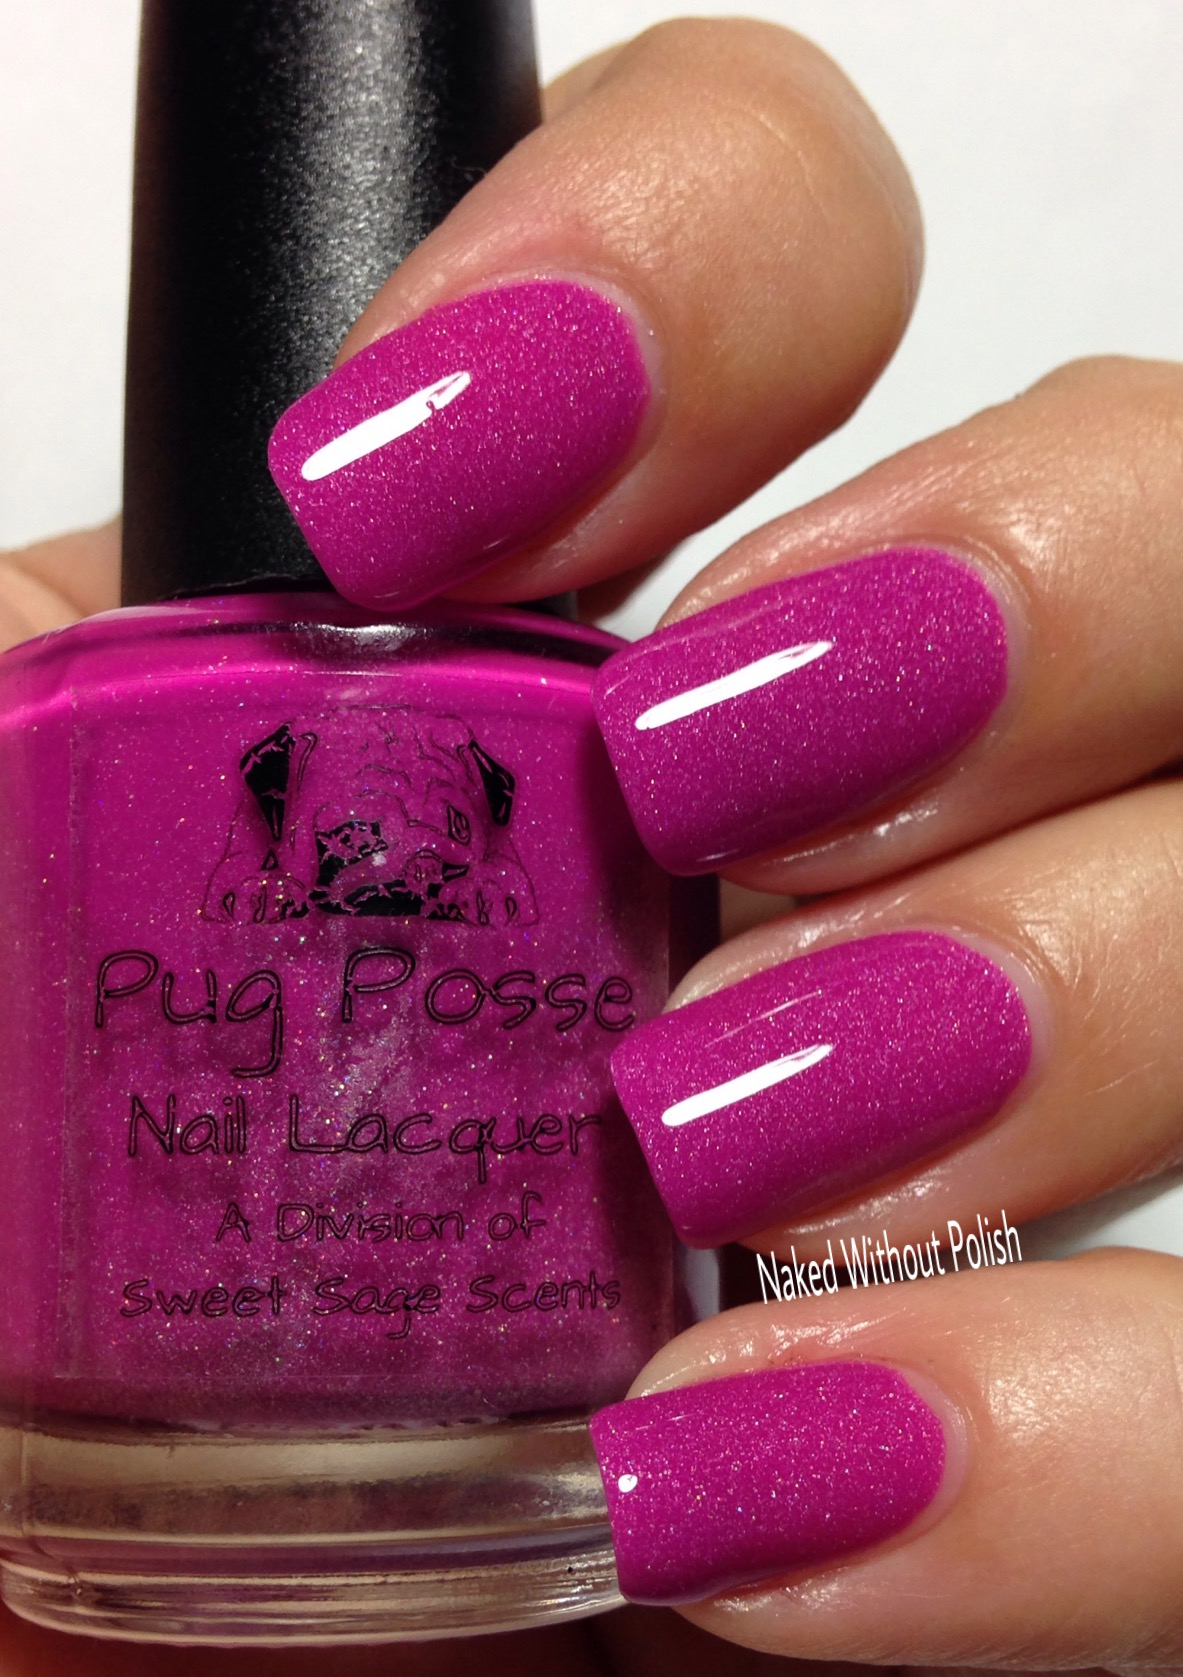 Pug-Posse-Nail-Lacquer-Loose-Lucy-11